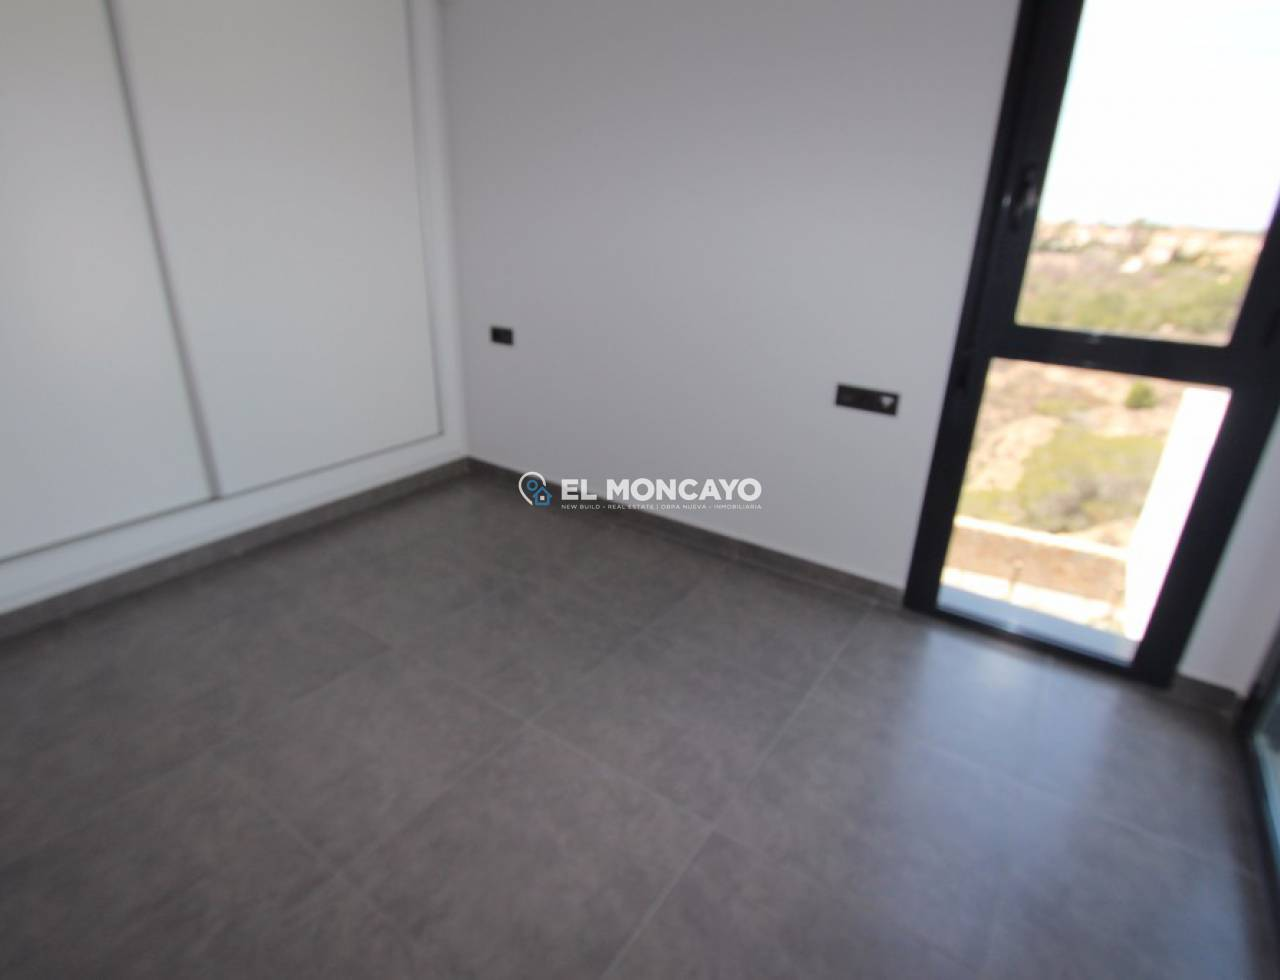 Penthouse duplex in Villamartín - Orihuela Costa (Costa Blanca South) 119 (13)